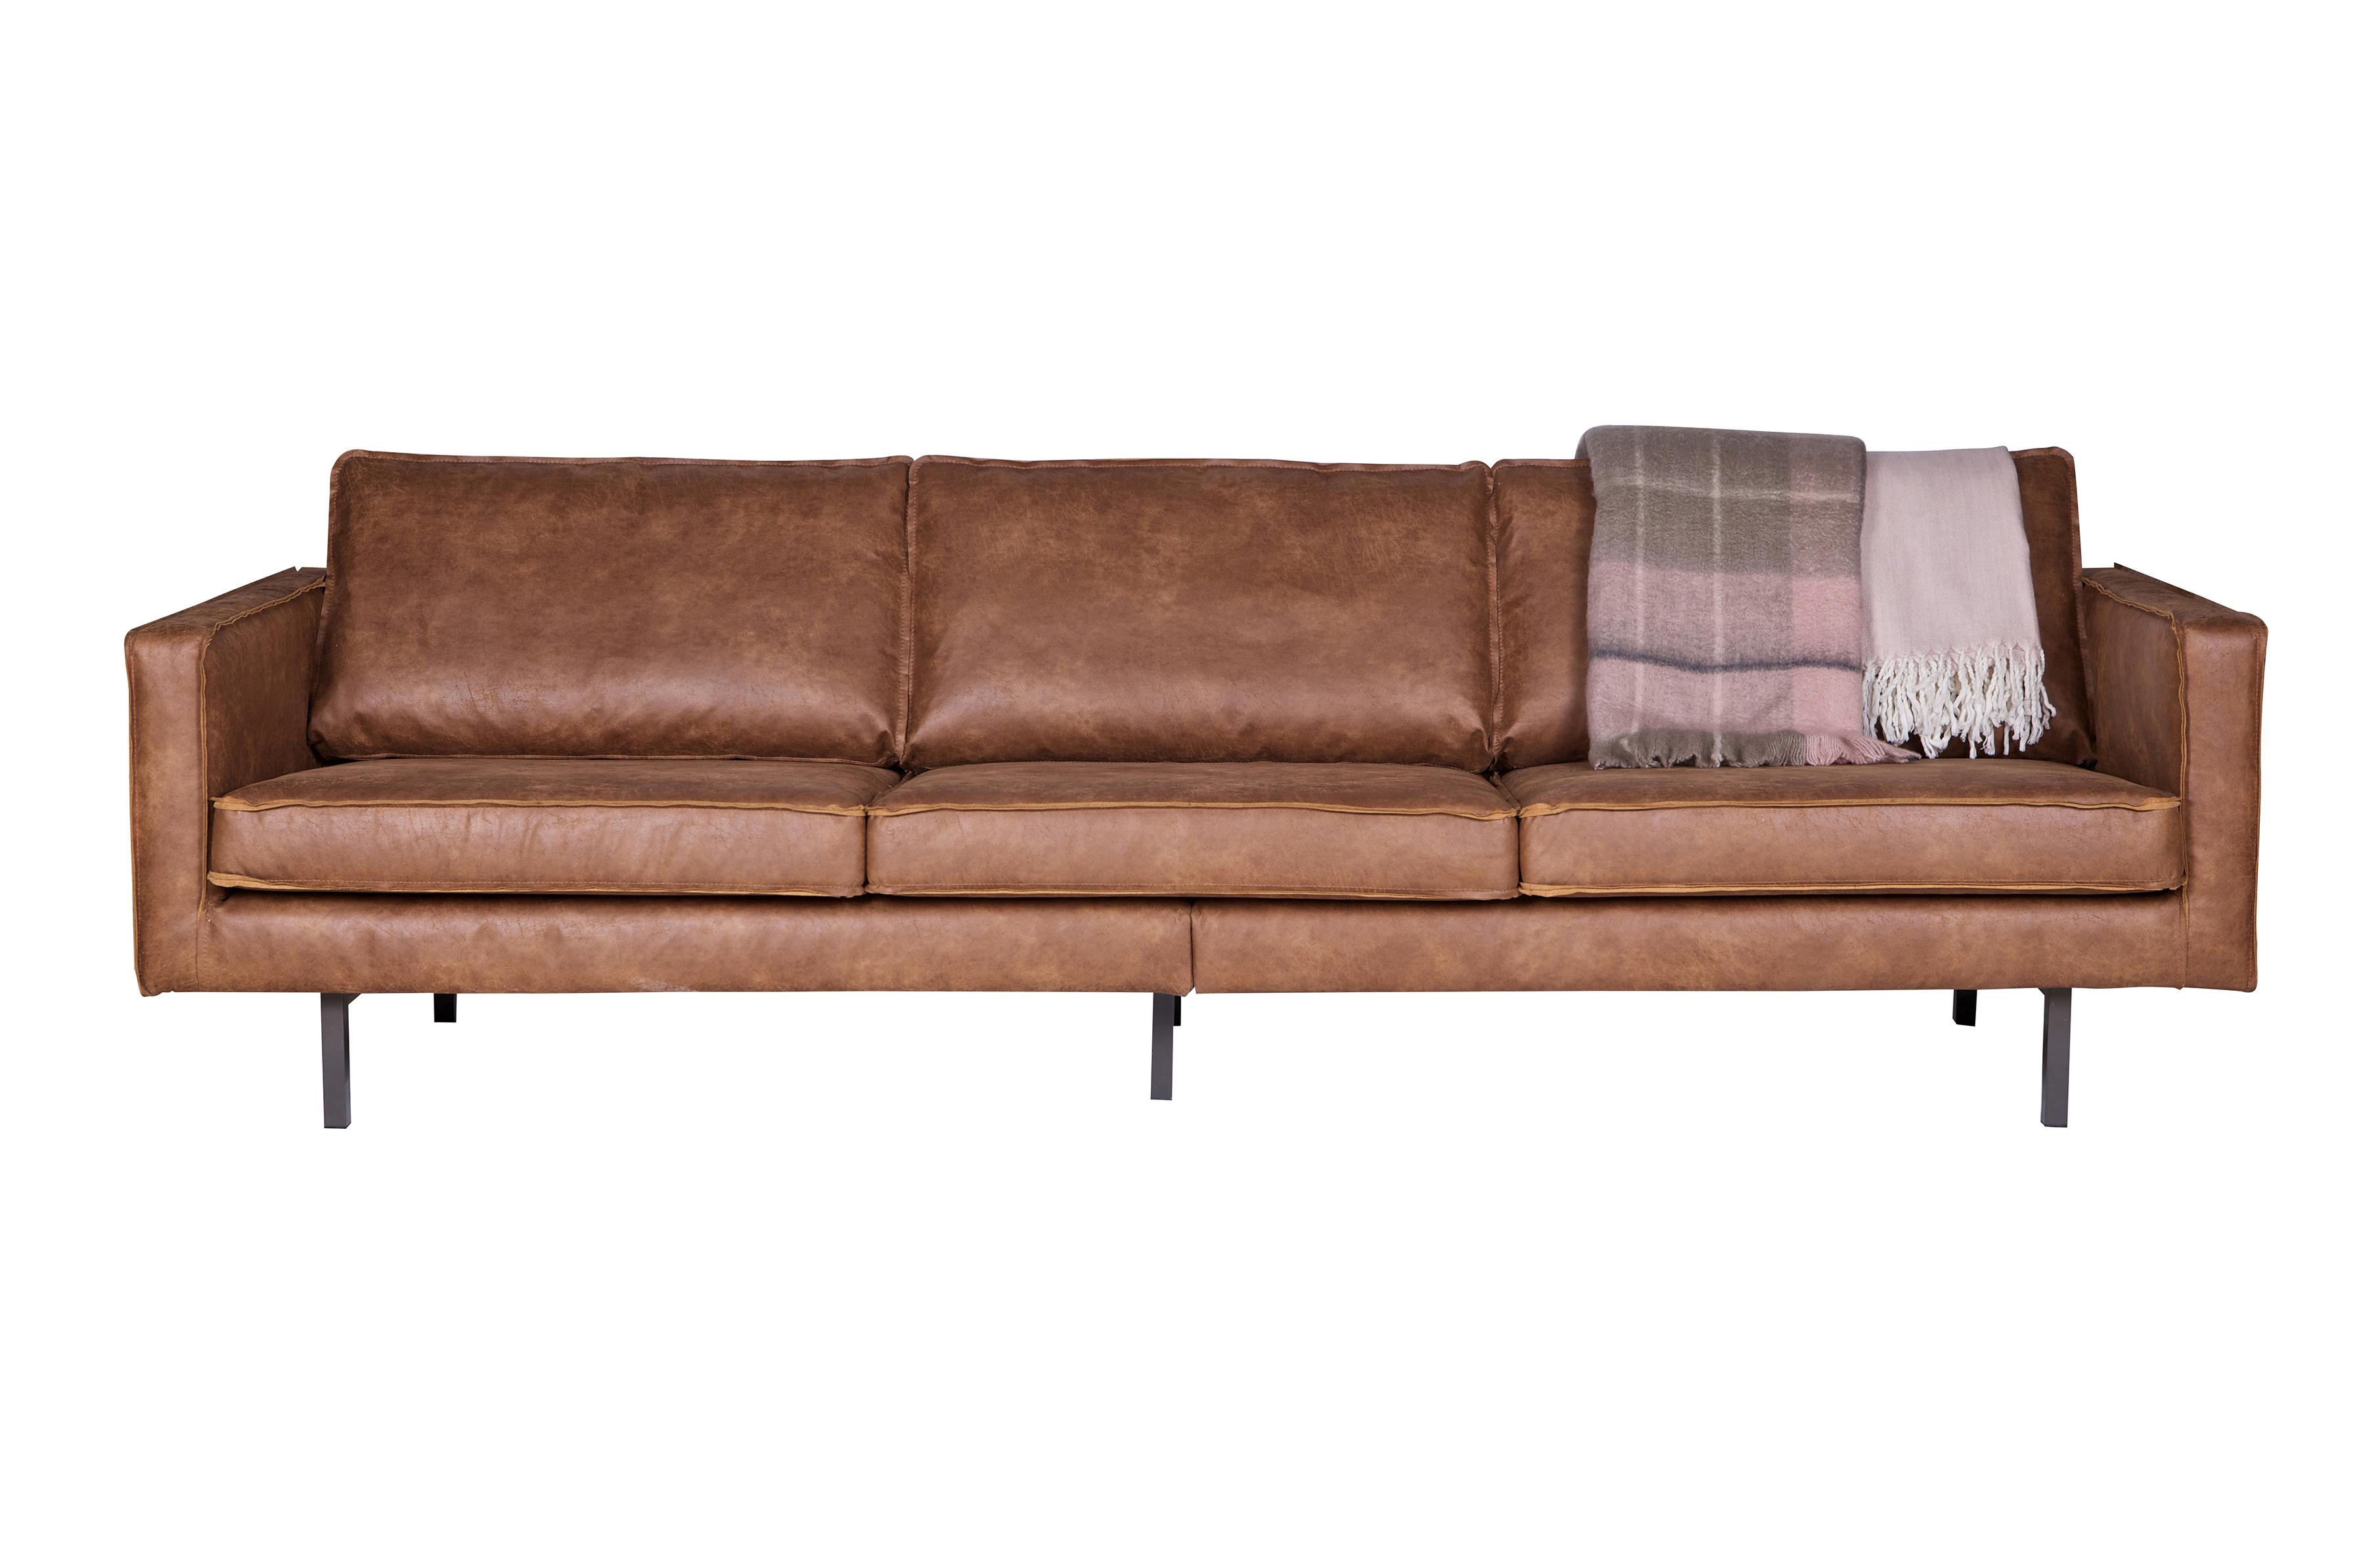 Couch Cognac Leder Rodeo Sofa 3 Seater Cognac Sofas Living Bepurehome